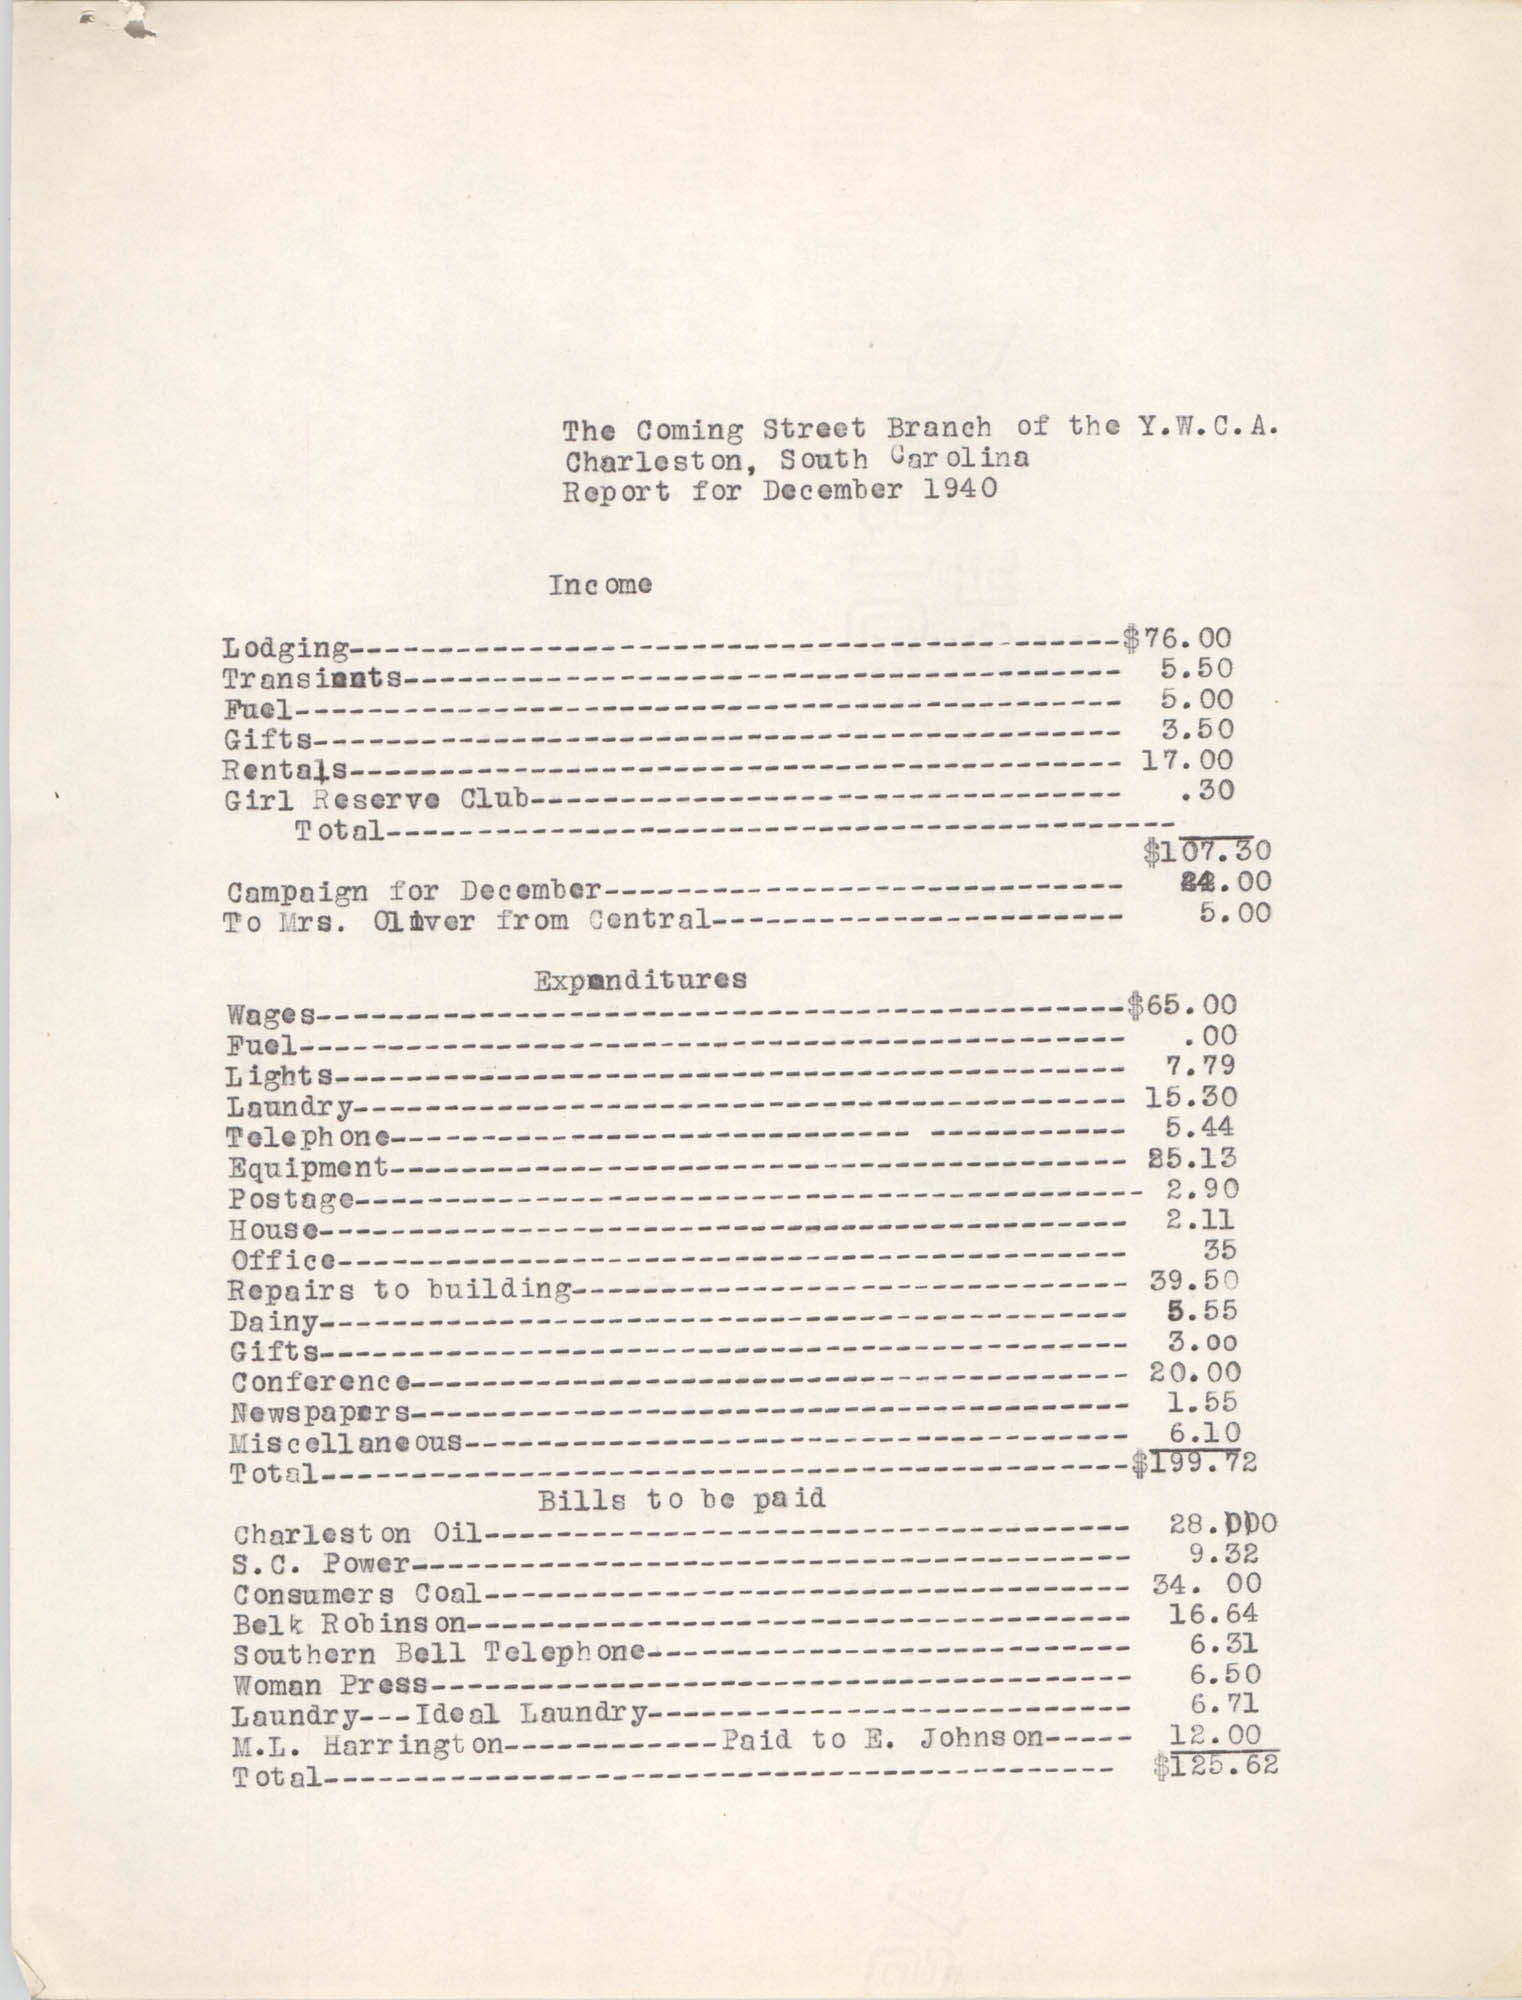 Monthly Report for the Coming Street Y.W.C.A., Income and Expenditures, December 1940